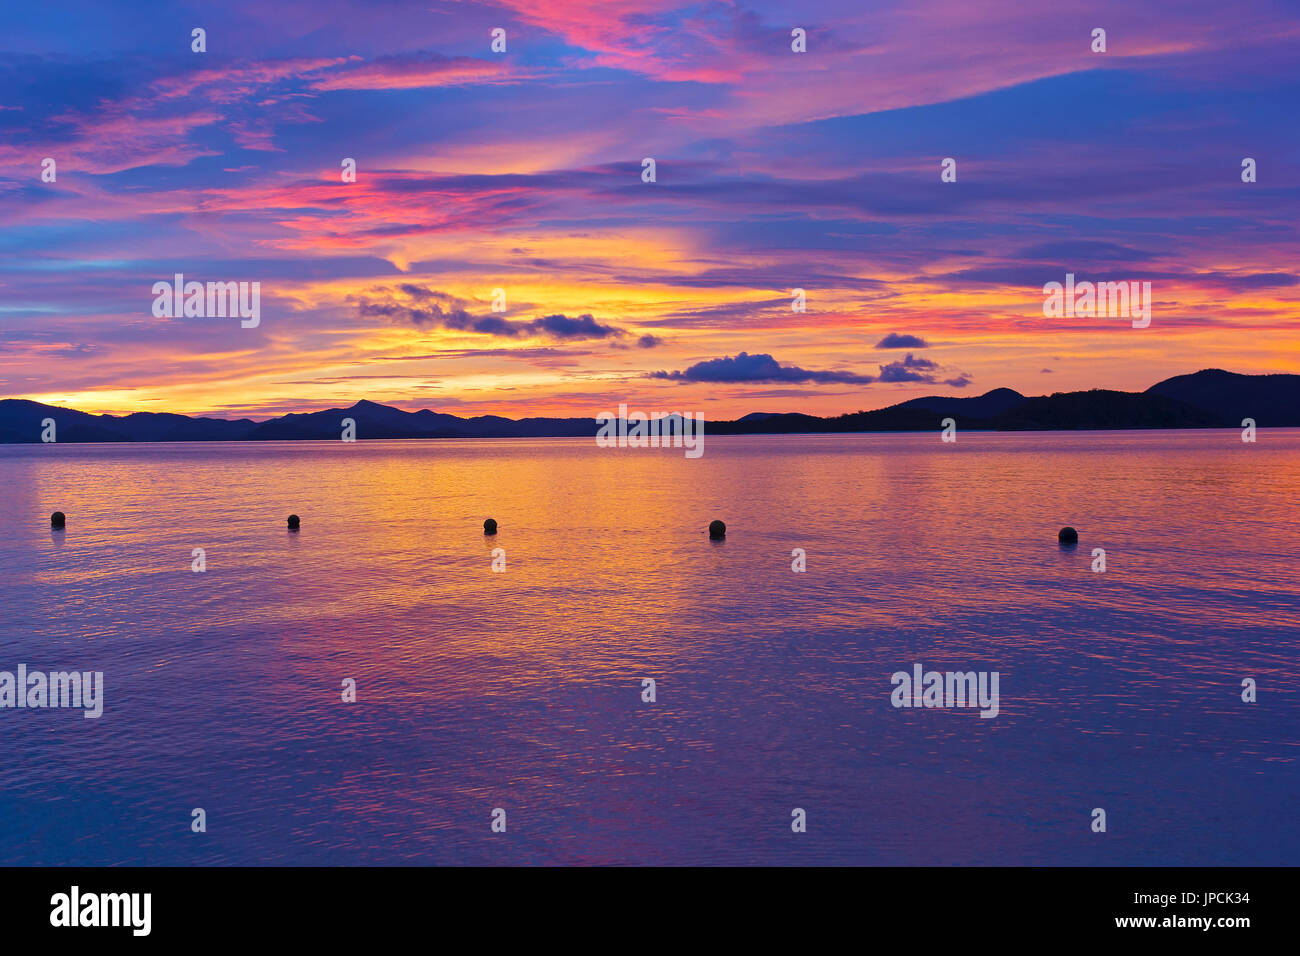 unearthly sunset colors on a tropical island ocean landscape with